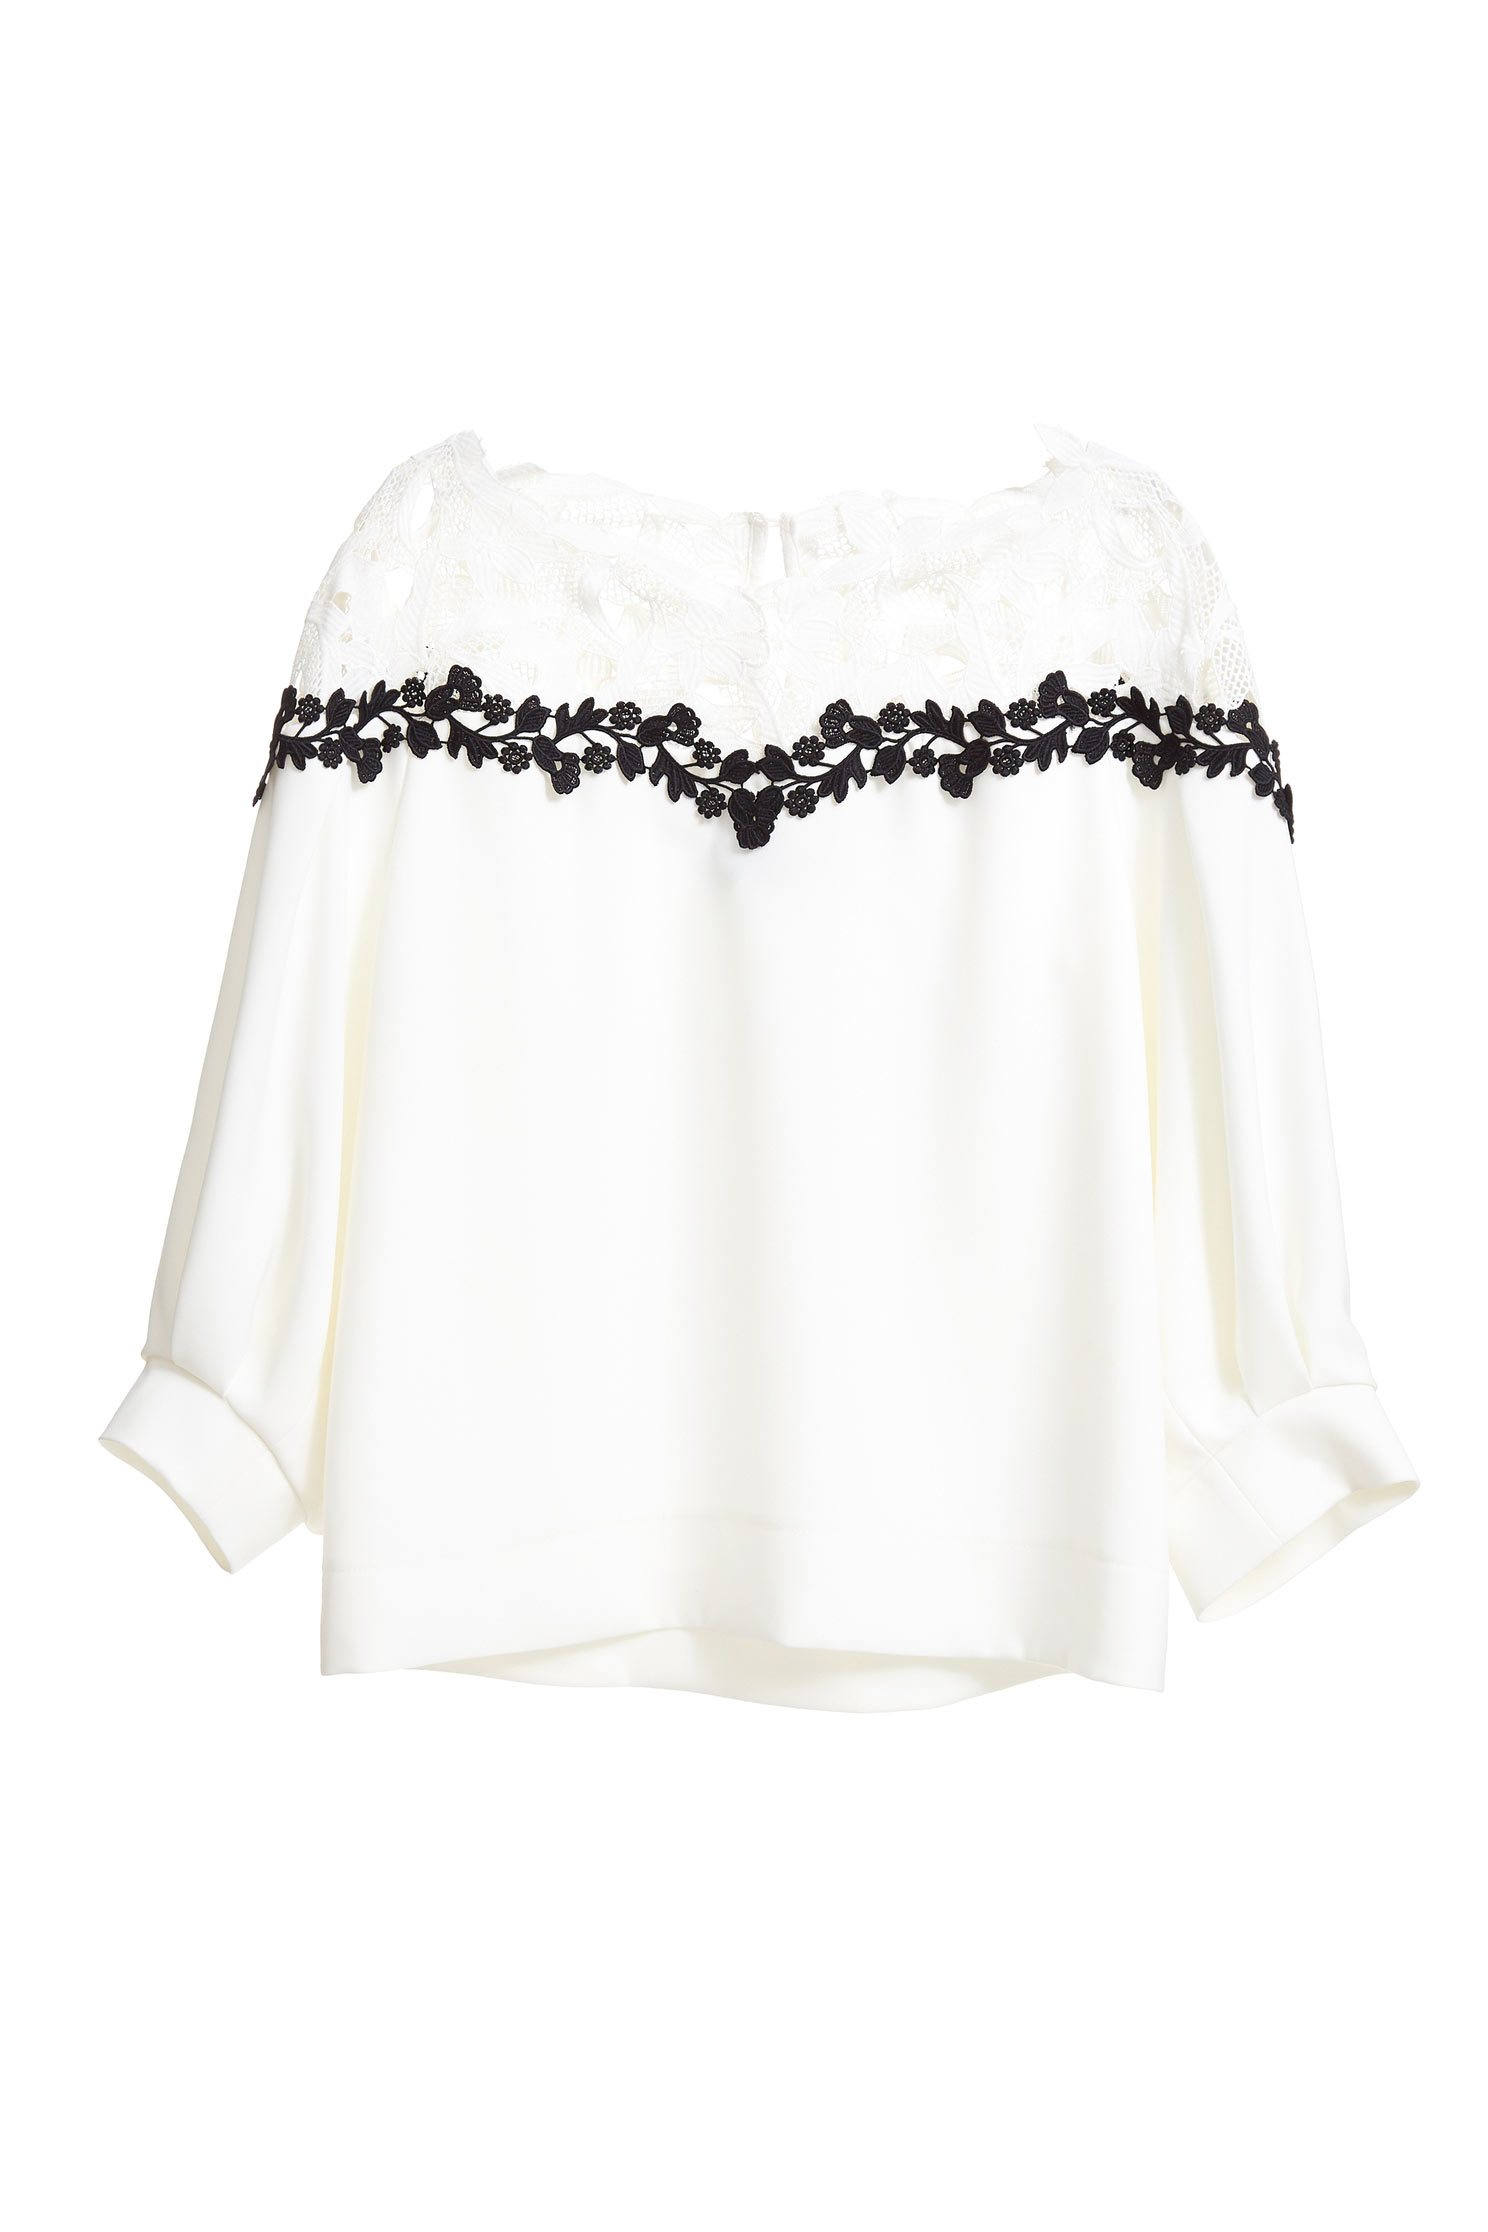 Micro-transparent stitching top,3/4sleevetop,top,whitetop